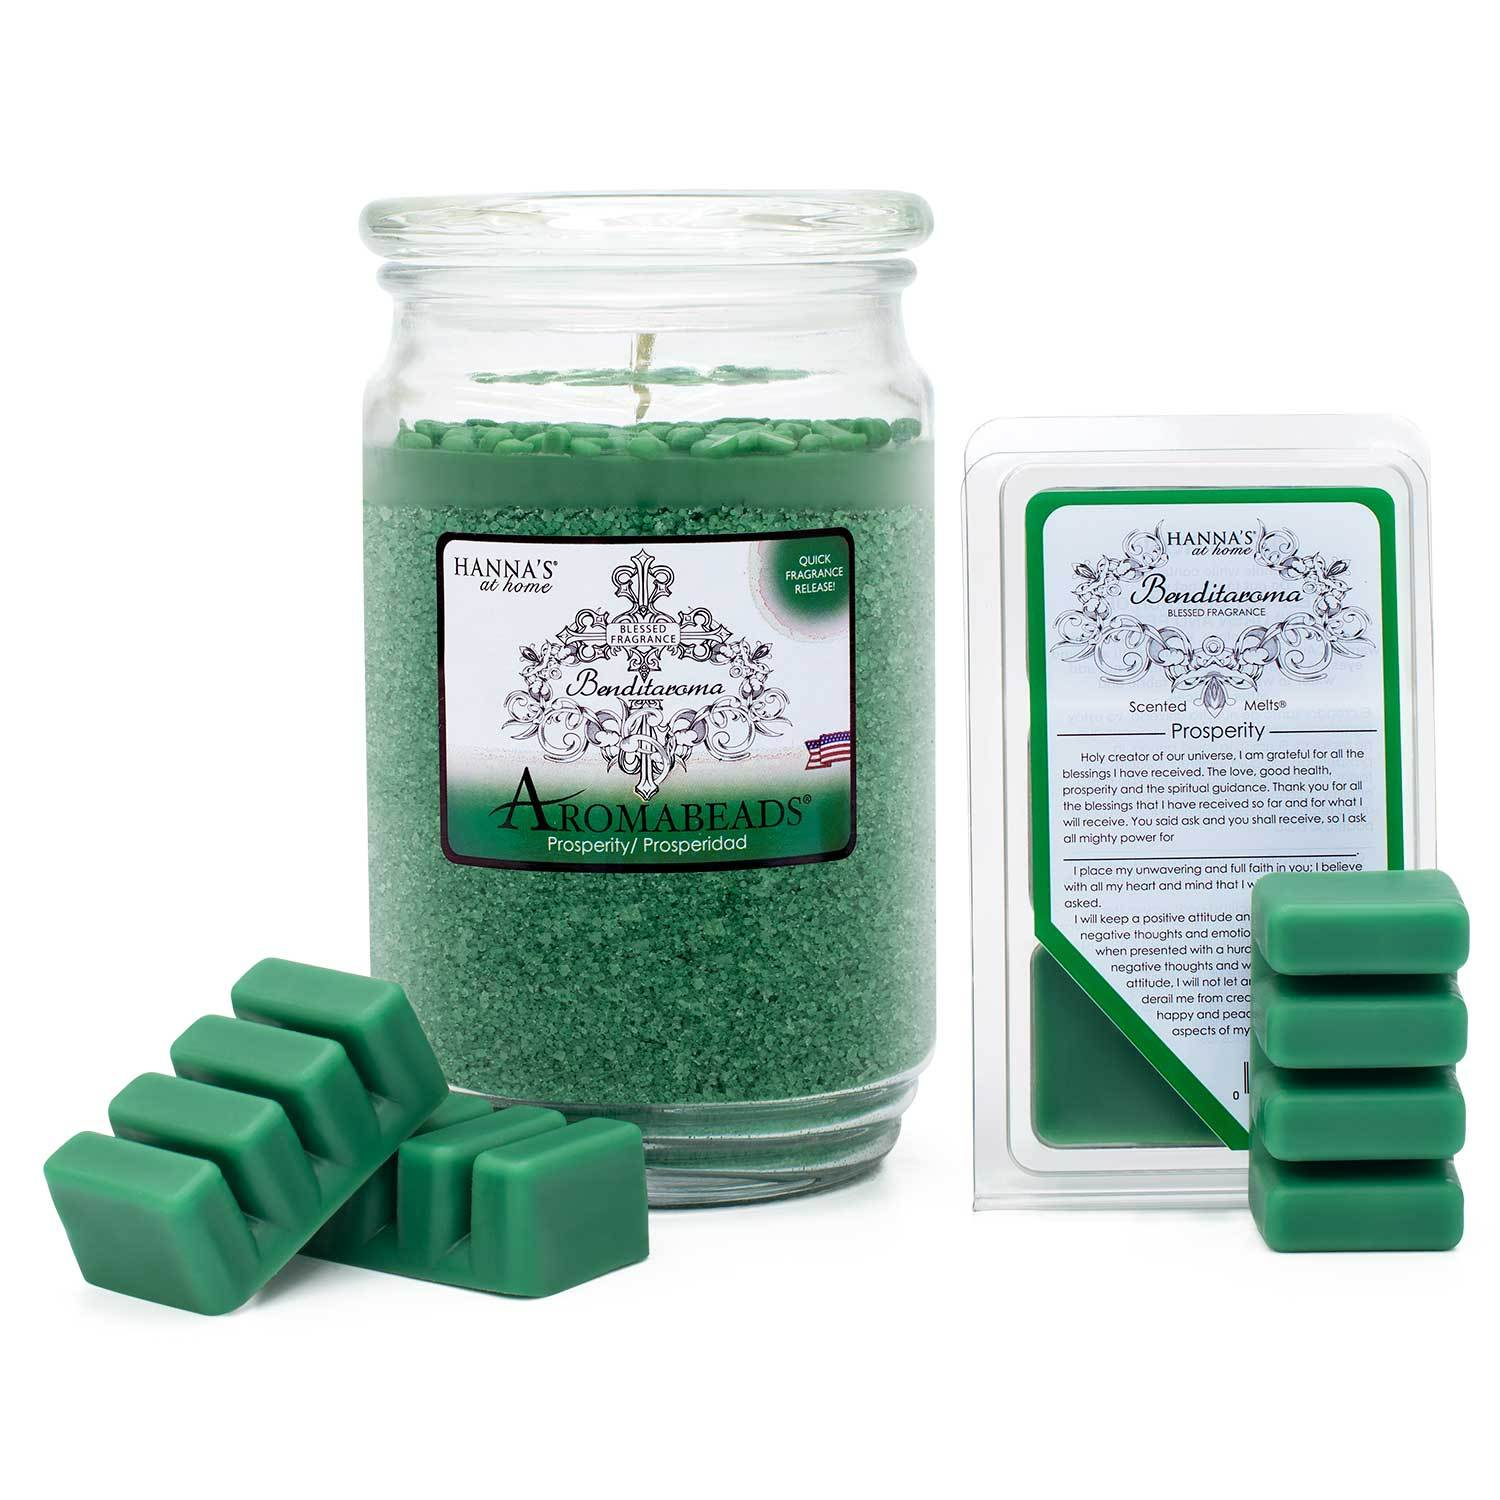 Prosperity Prosperidad Scented Wax Melts Melts Candlemart.com $ 1.99